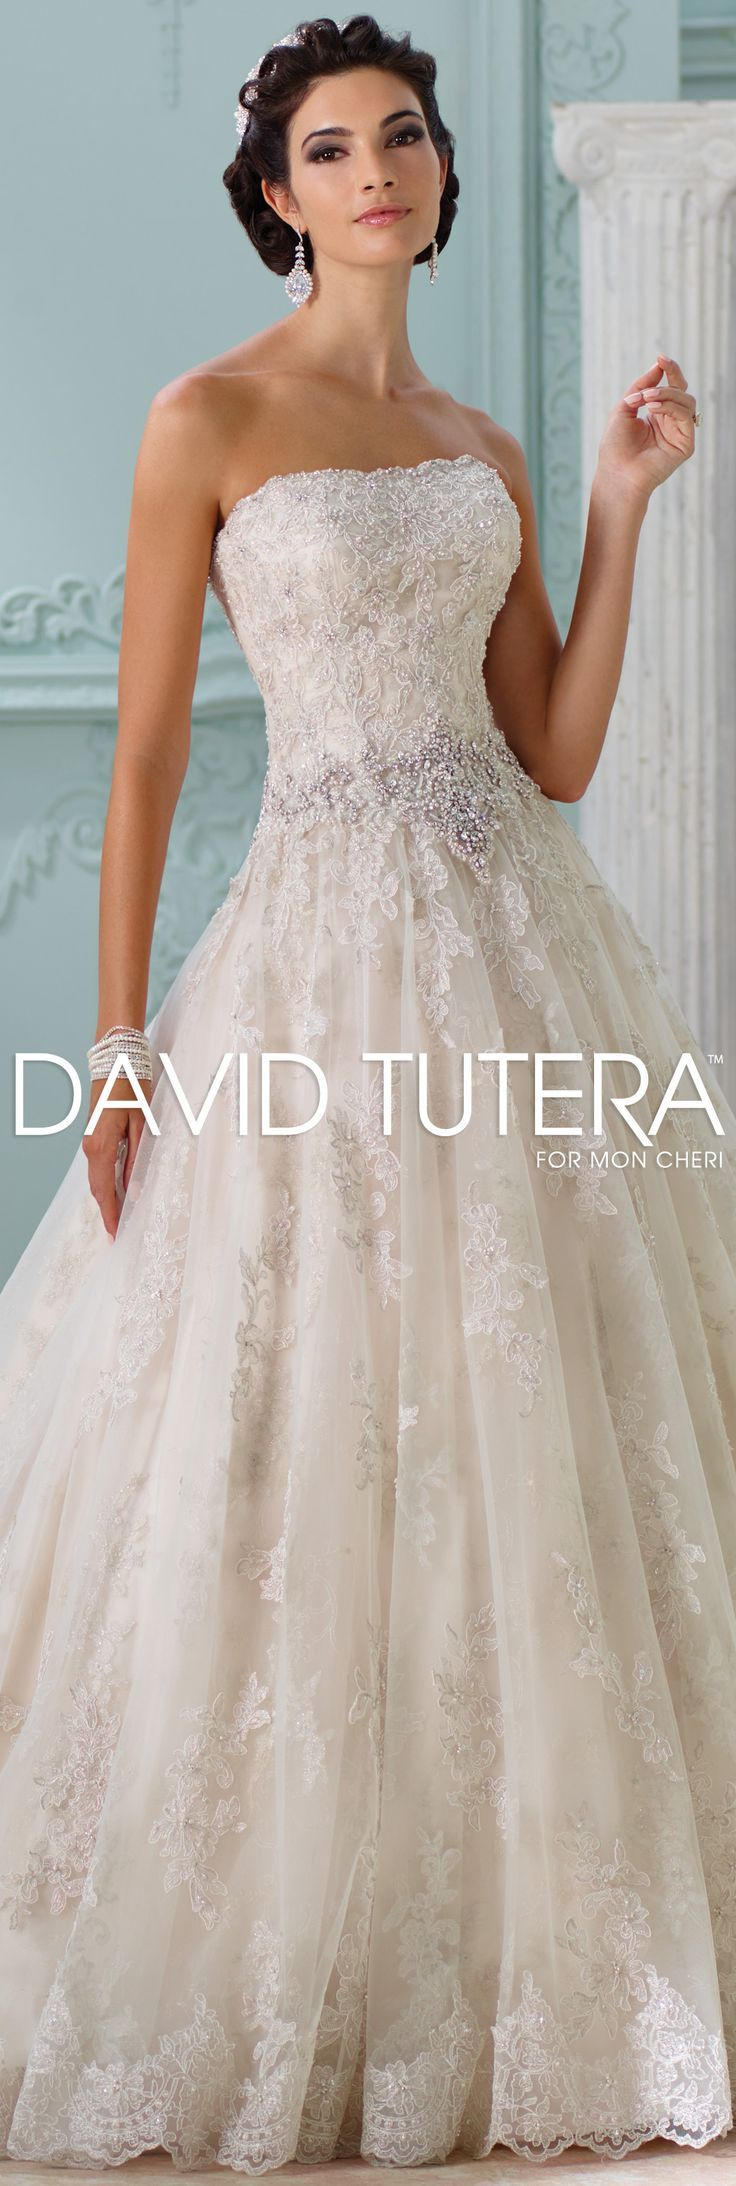 The david tutera for mon cheri spring 2016 wedding gown for David tutera wedding jewelry collection